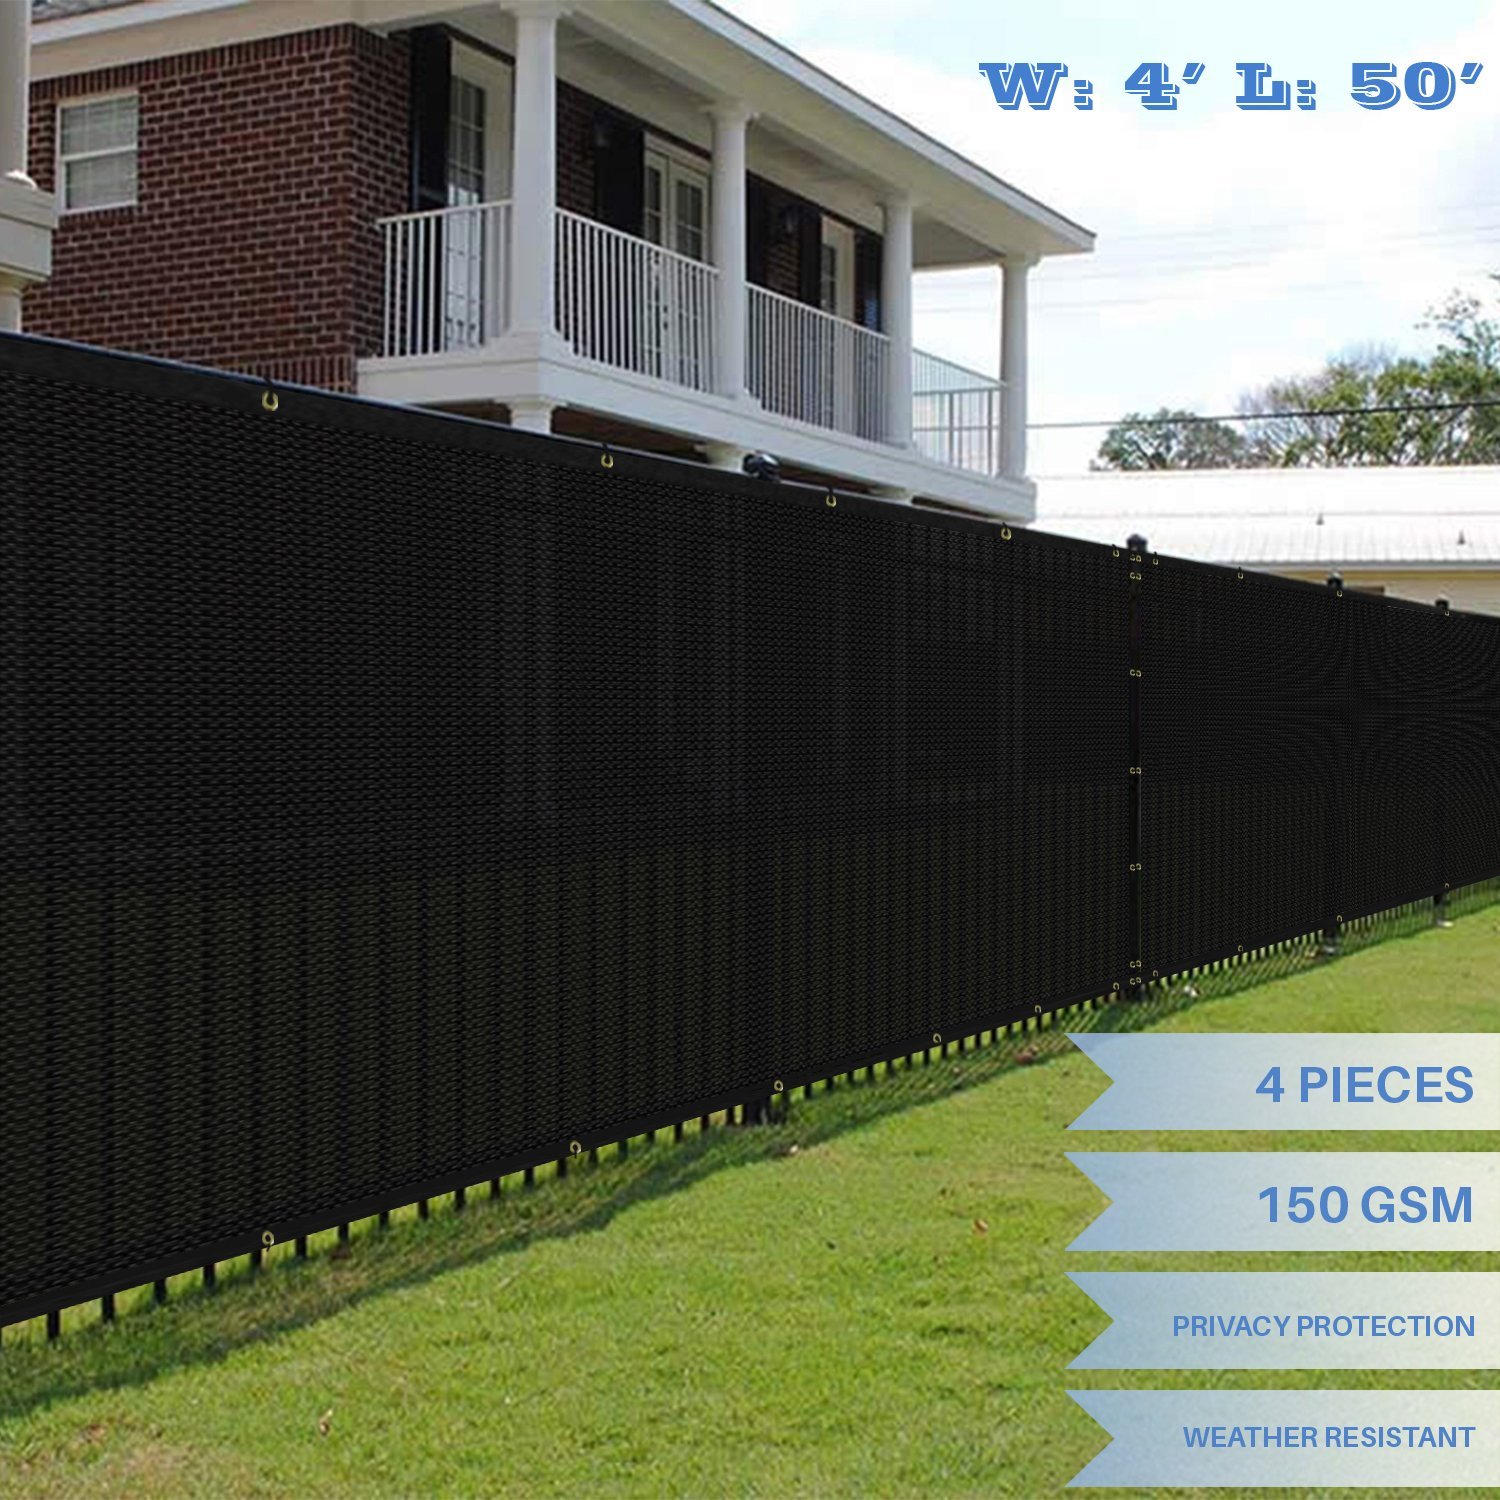 E&K Sunrise 4' x 50' Black Fence Privacy Screen, Commercial Outdoor Backyard Shade Windscreen Mesh Fabric 3 Years Warranty (Customized Sizes Available) - Set of 4